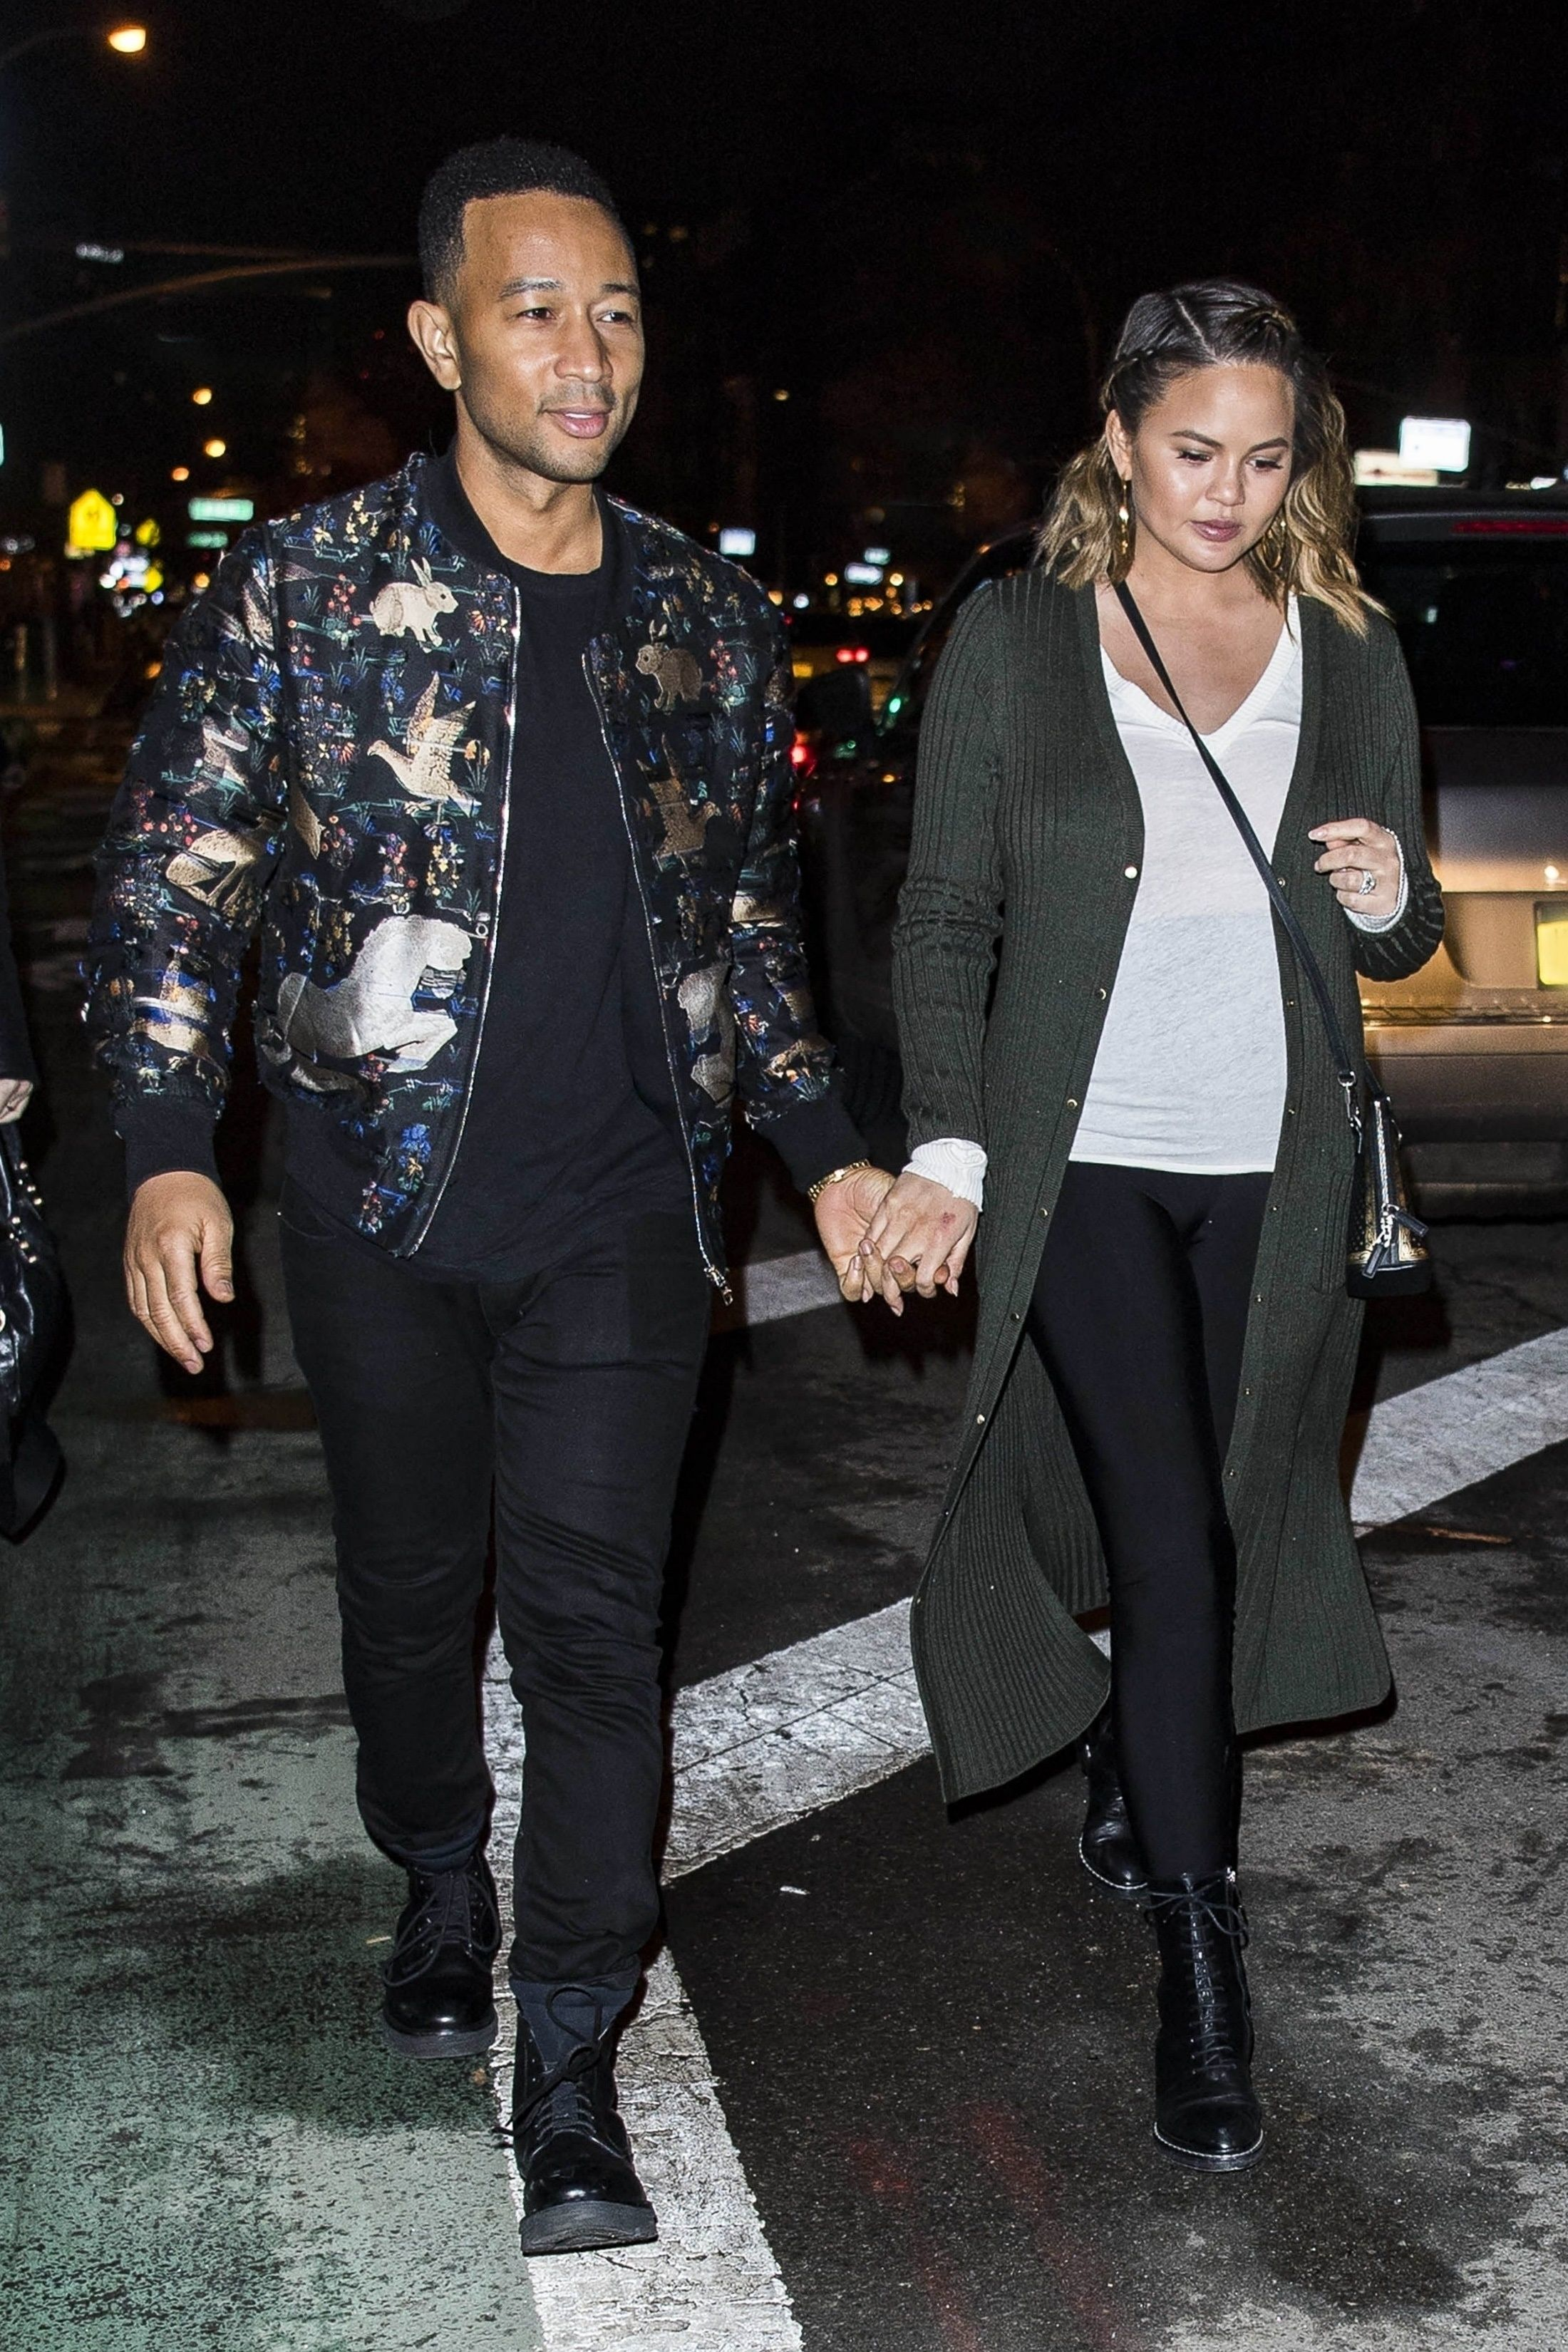 John Legend Out On Date Night On Looklive Fashion Fashion Night John Legend [ 3300 x 2200 Pixel ]